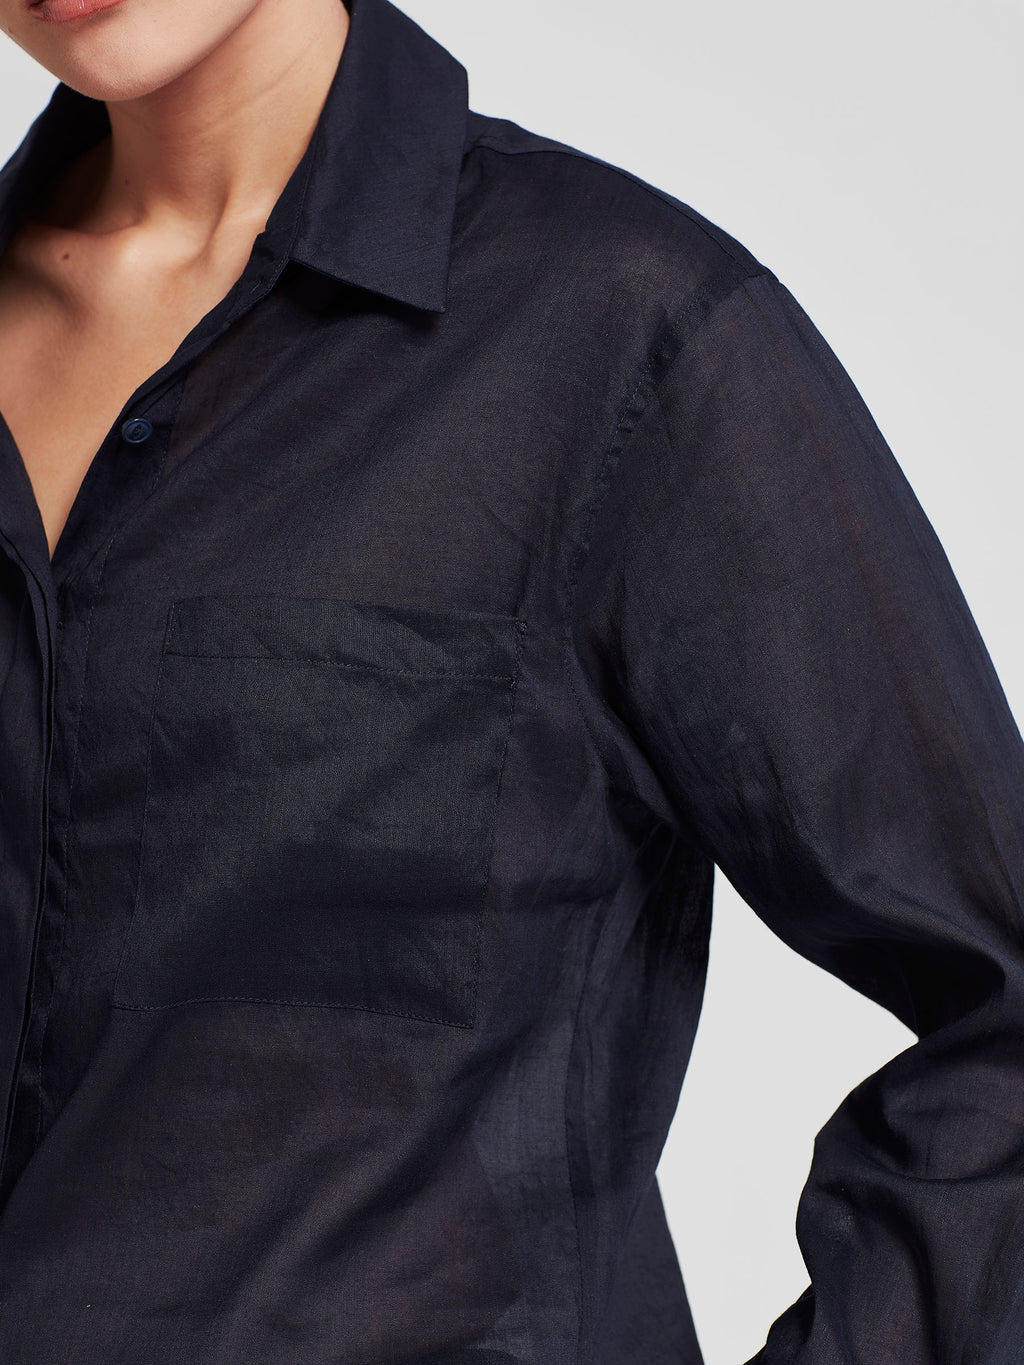 Cohen Shirt (Sheer Cotton) Mignight